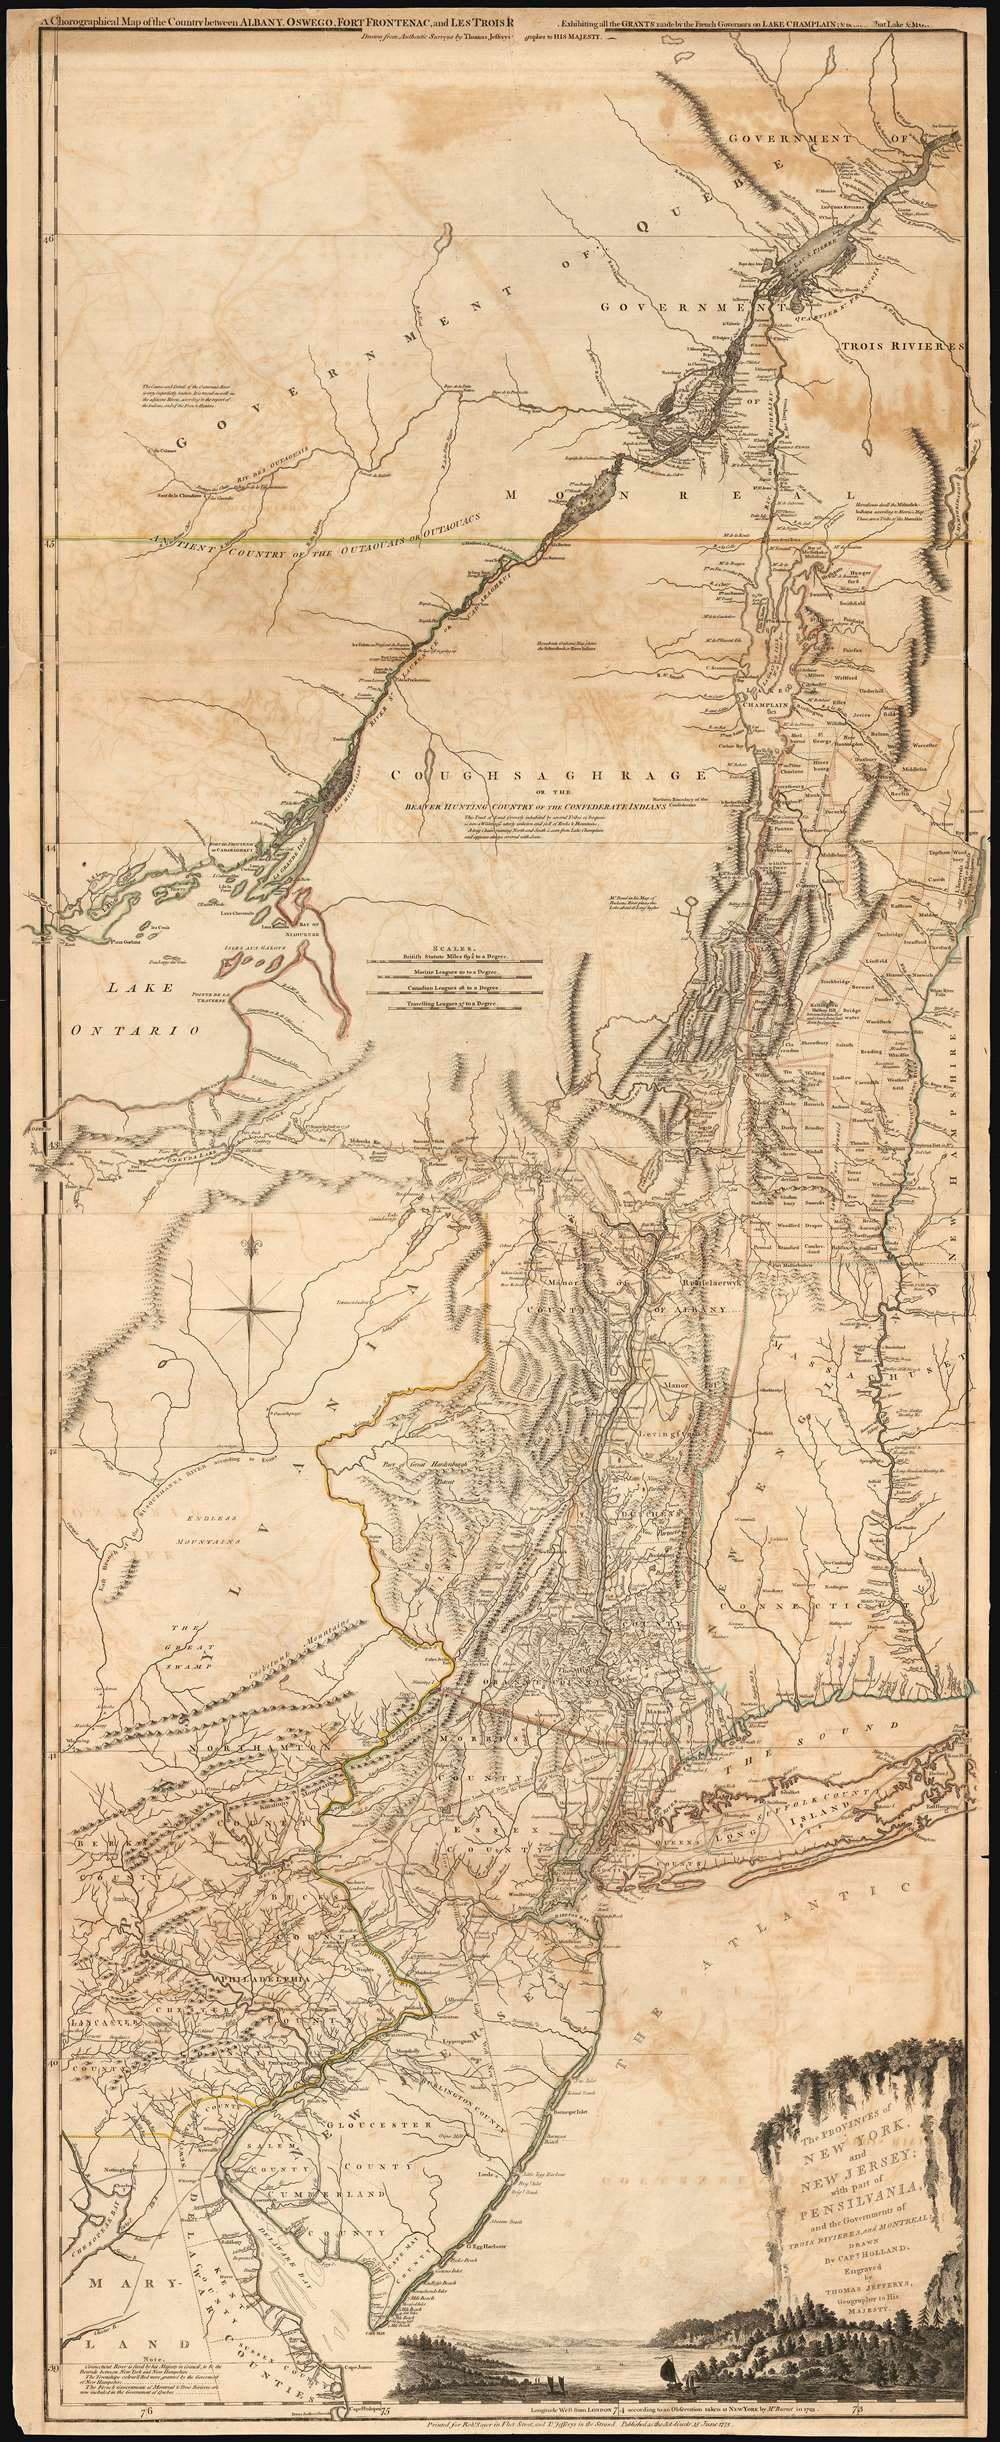 The Provinces of NEW YORK, and NEW JERSEY; with part of PENSILVANIA, and the Governments of TROIS RIVIERES, and MONTREAL: drawn by Capt. Holland. / A Chorographical Map of the Country between Albany, Oswego, Fort Frontenac, and Les Trois Rivieres; Exhibiting all the Grants made by the French Governors on Lake Champlain; & between that Lake & Montreal.